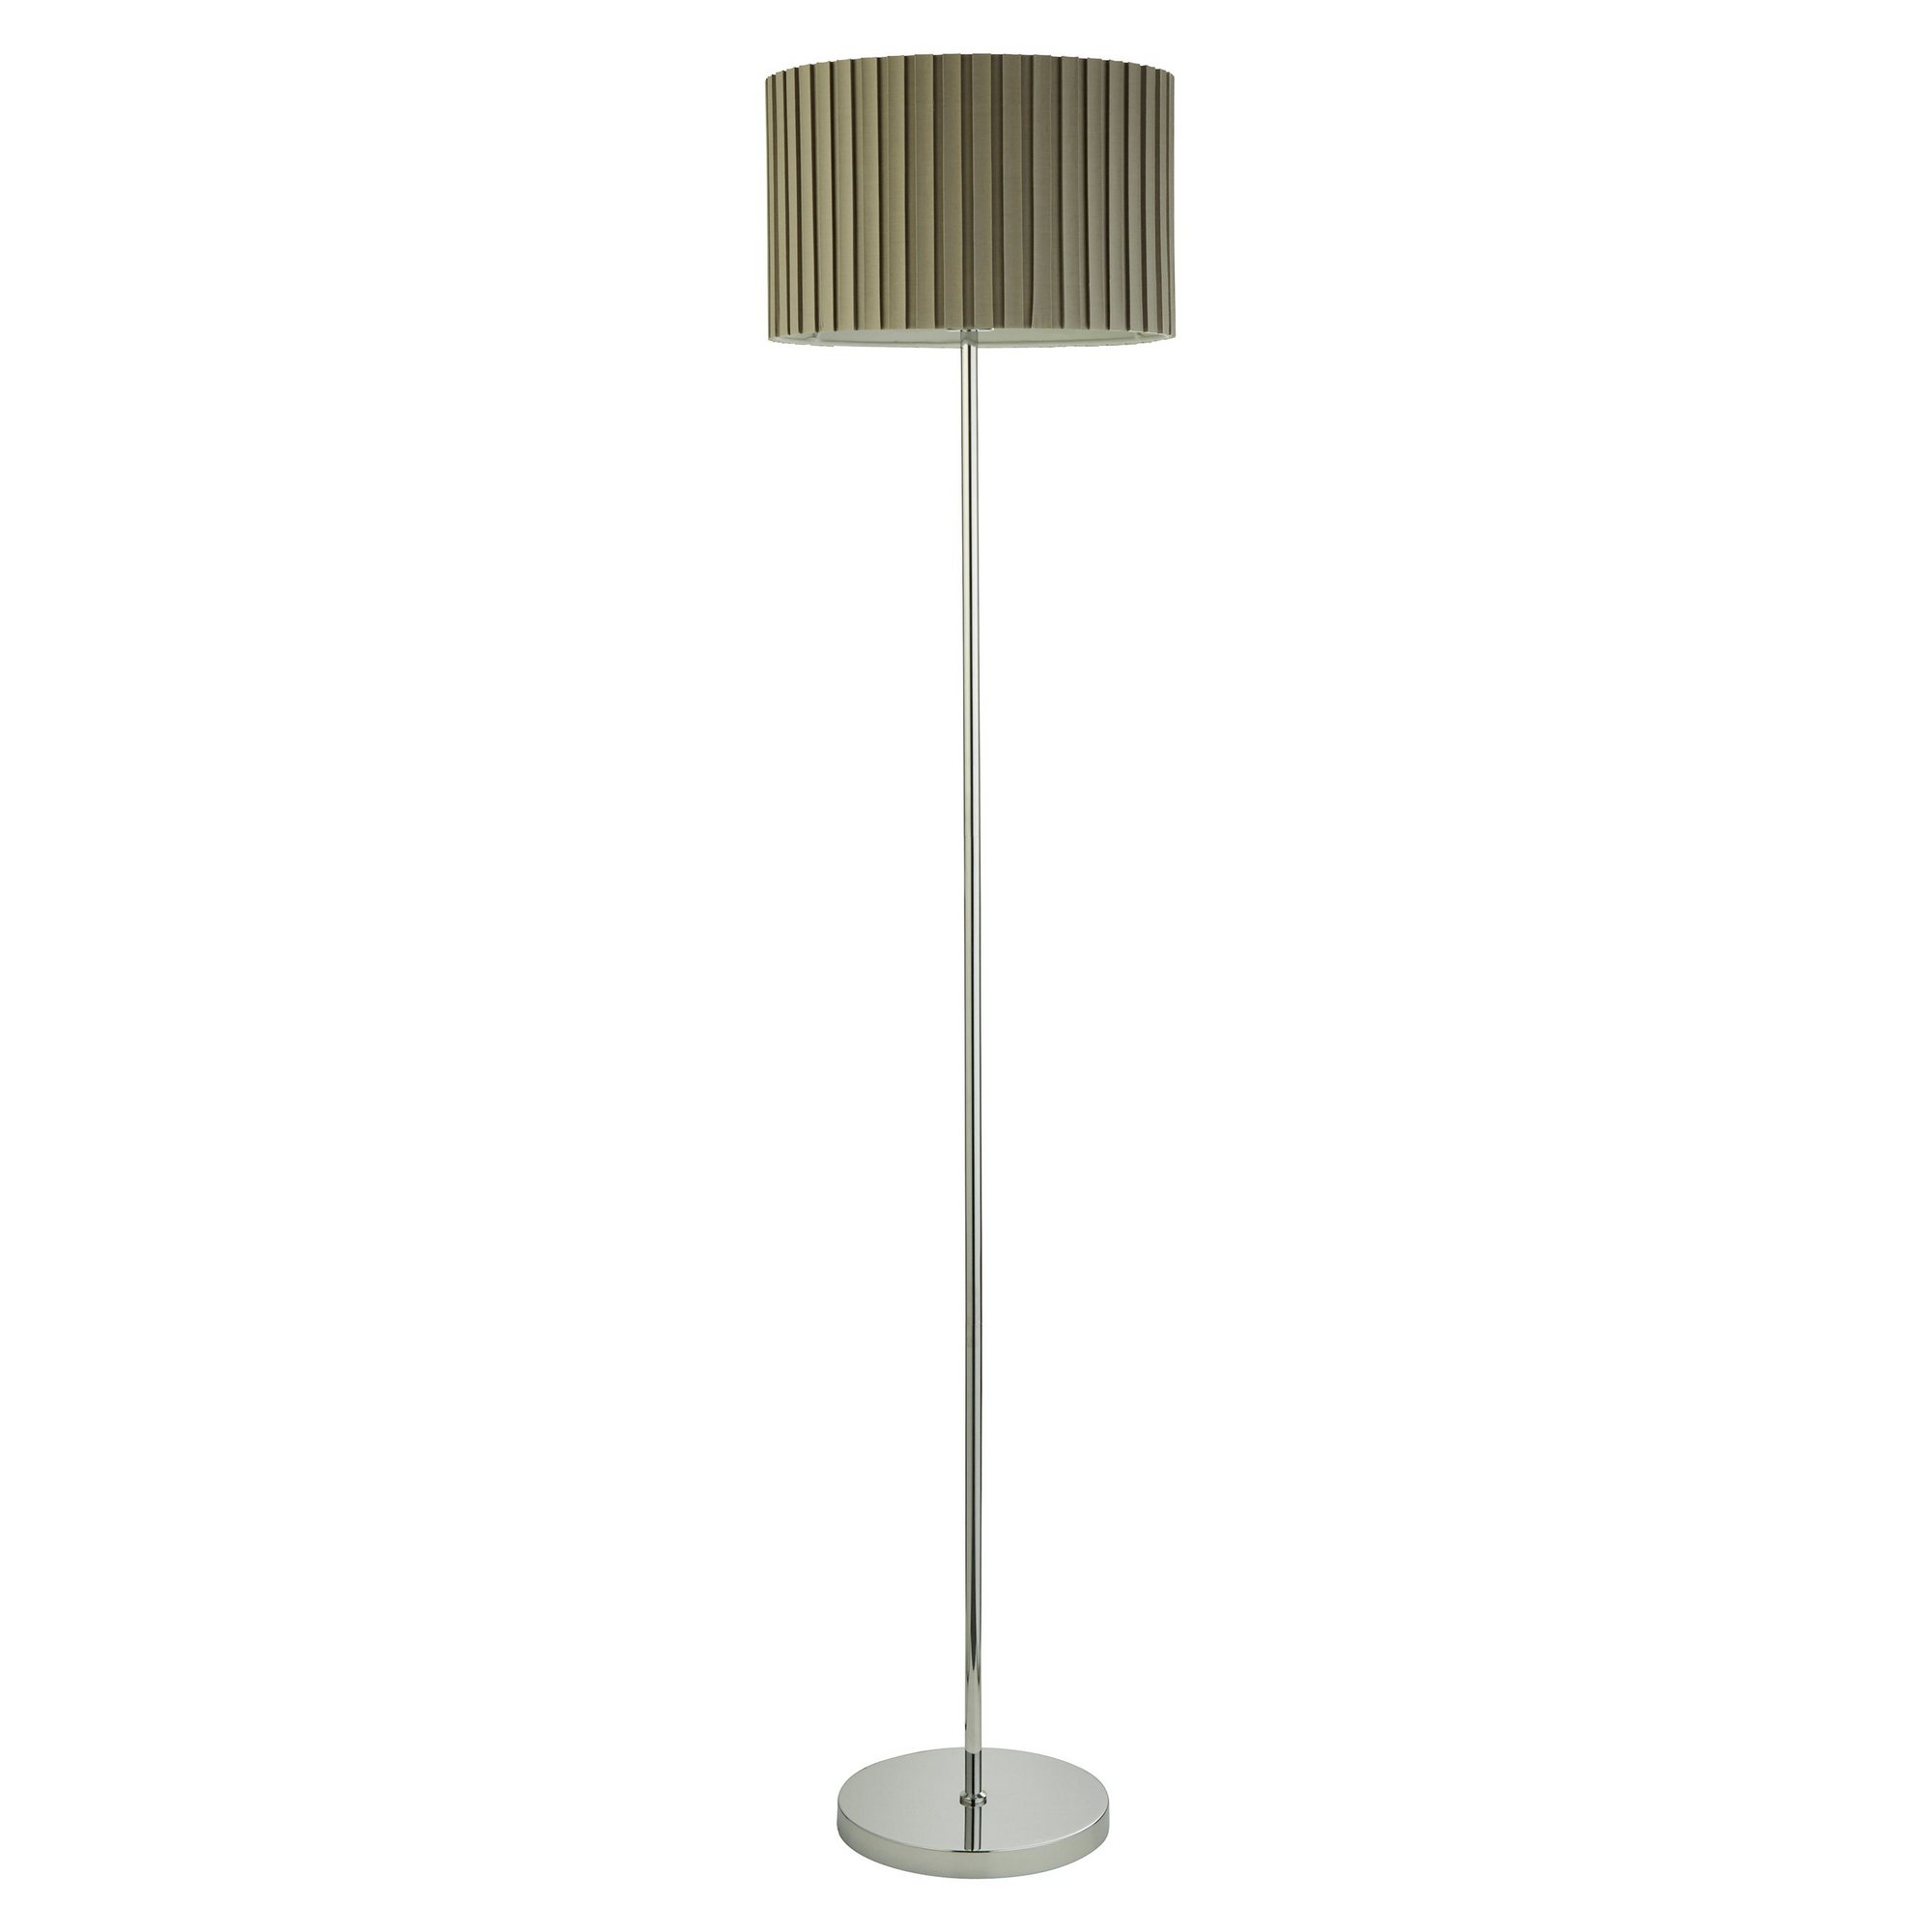 Image of Chrome Floor Lamp with Pleated Shade